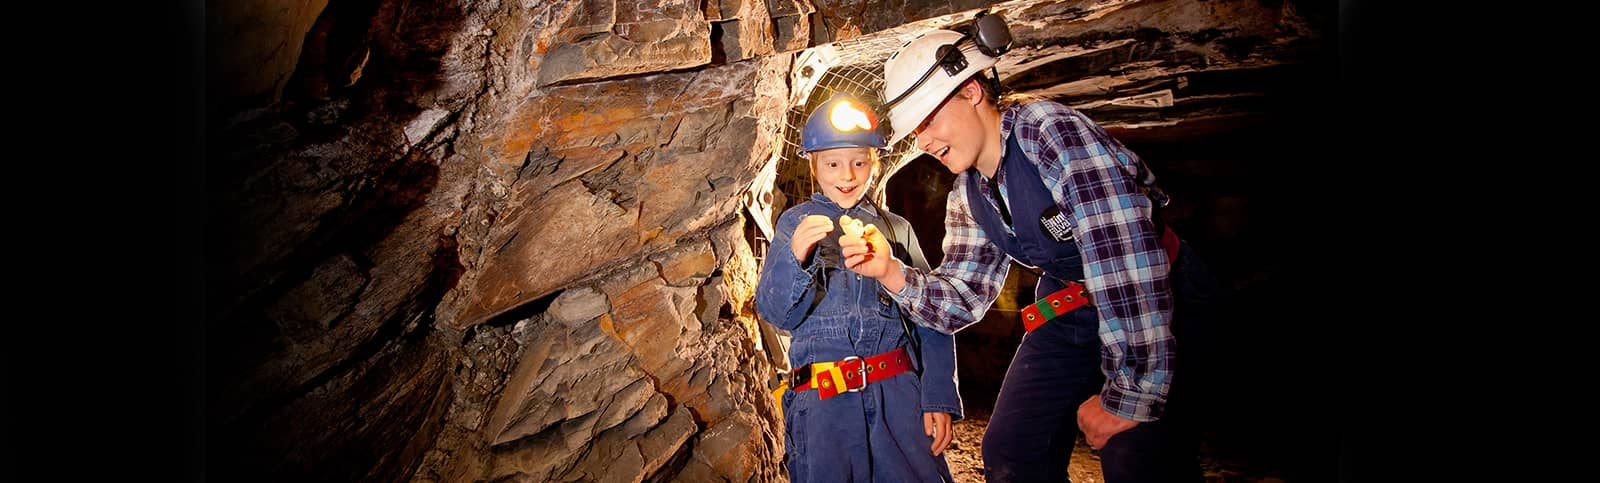 Visitors looking at a gold nugget 85 metres underground on an Adventure Tour